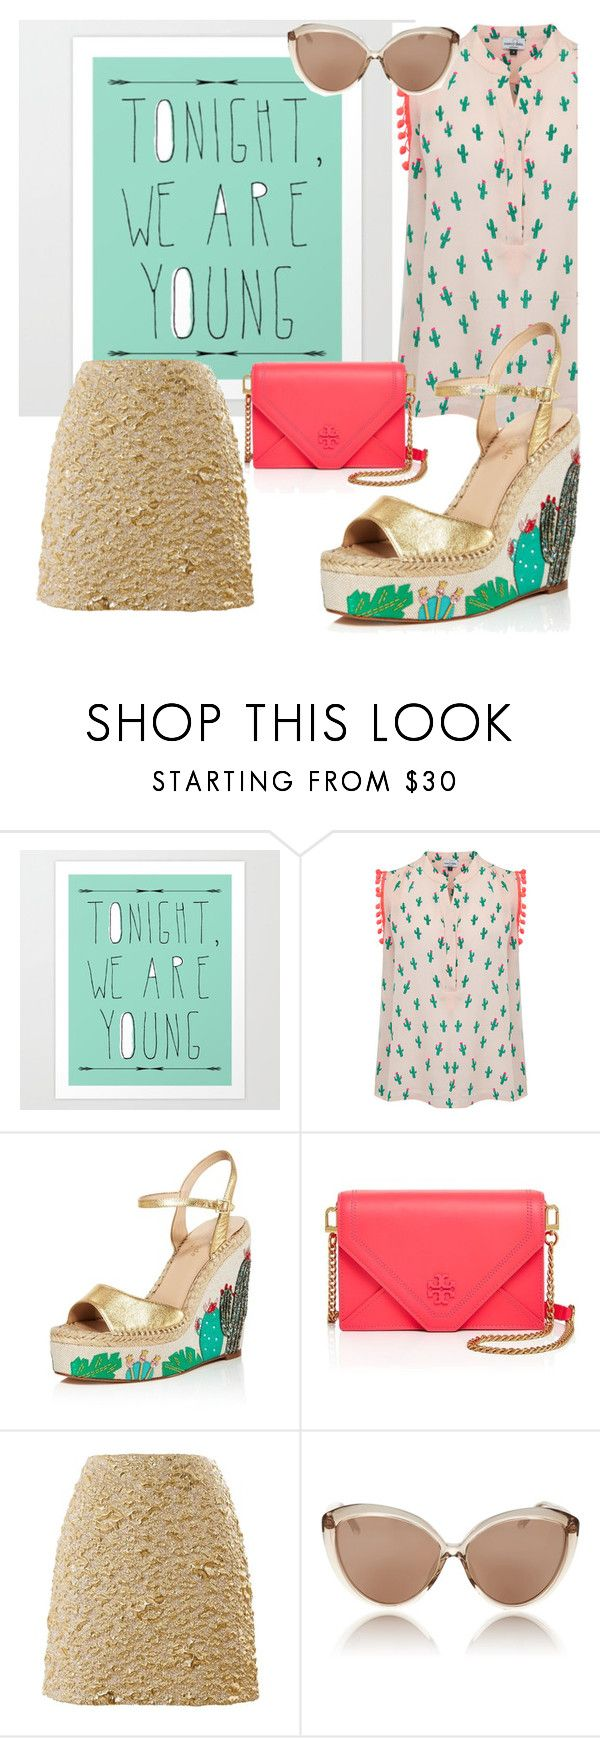 """""""The sweet cactus"""" by tharusmiles ❤ liked on Polyvore featuring Mercy Delta, Kate Spade, Tory Burch, Kenzo and Linda Farrow"""